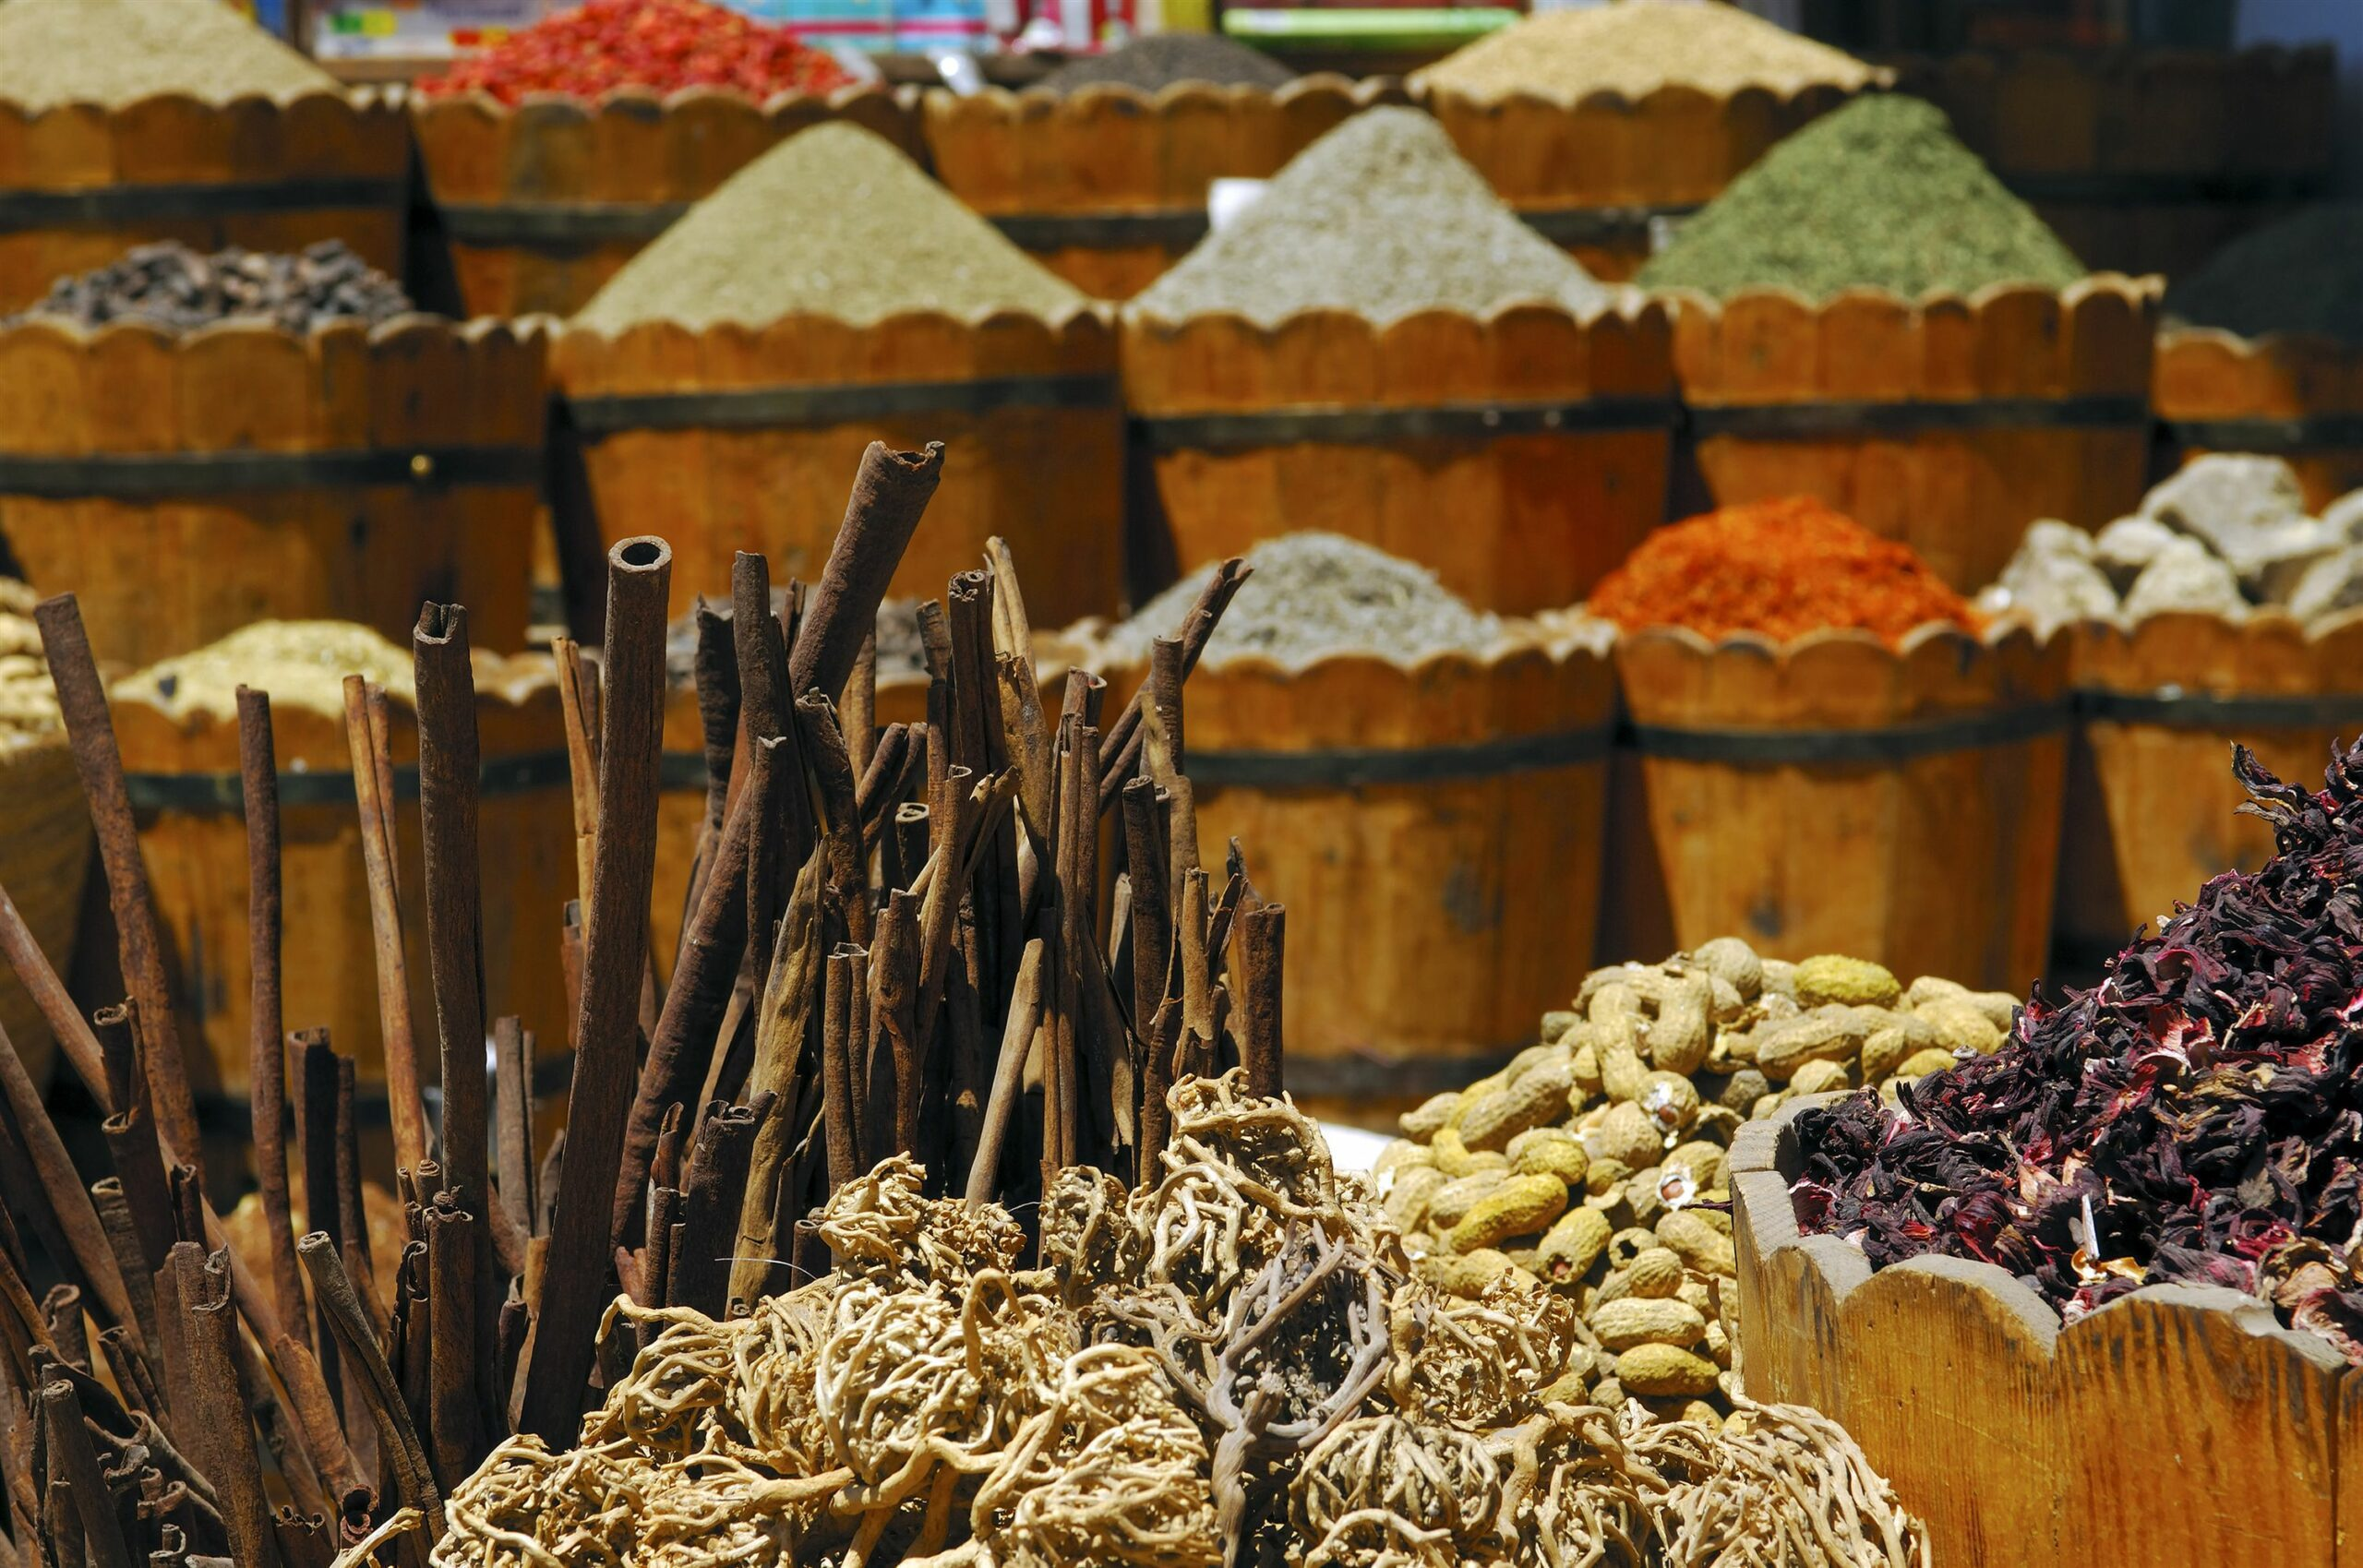 Spices at Egypt Market